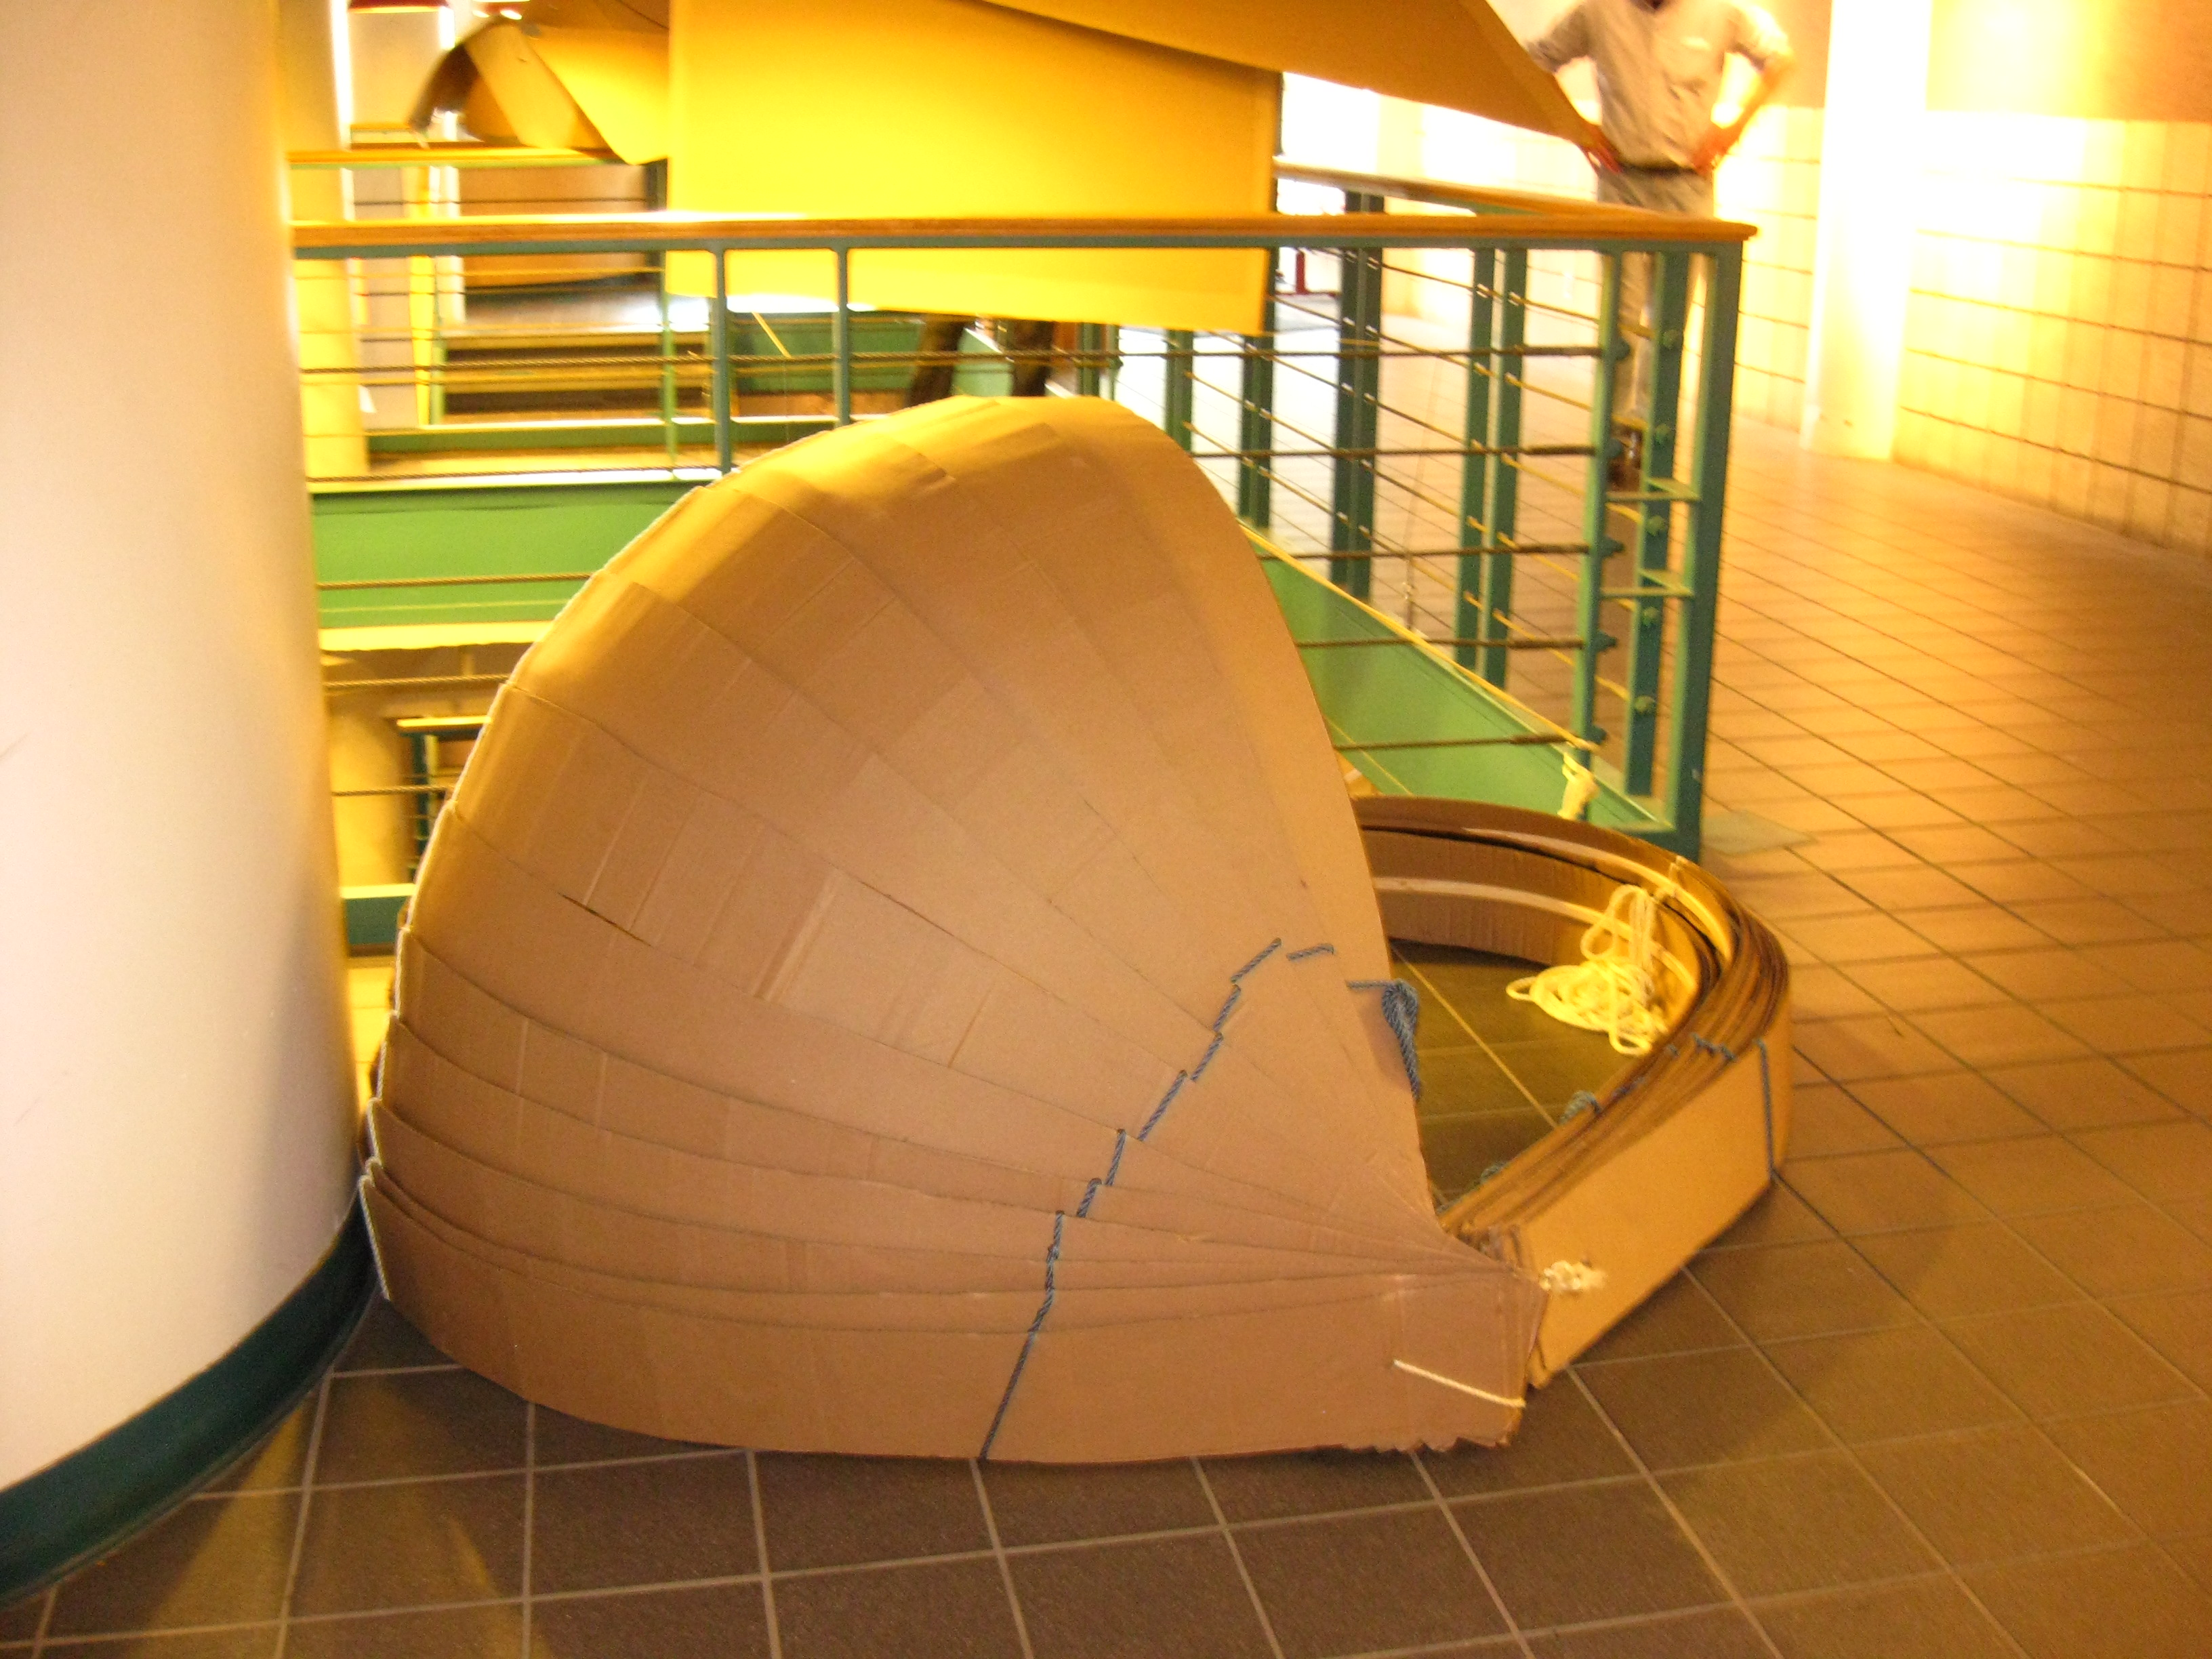 miad cardboard shelter project by ashley modlinski at